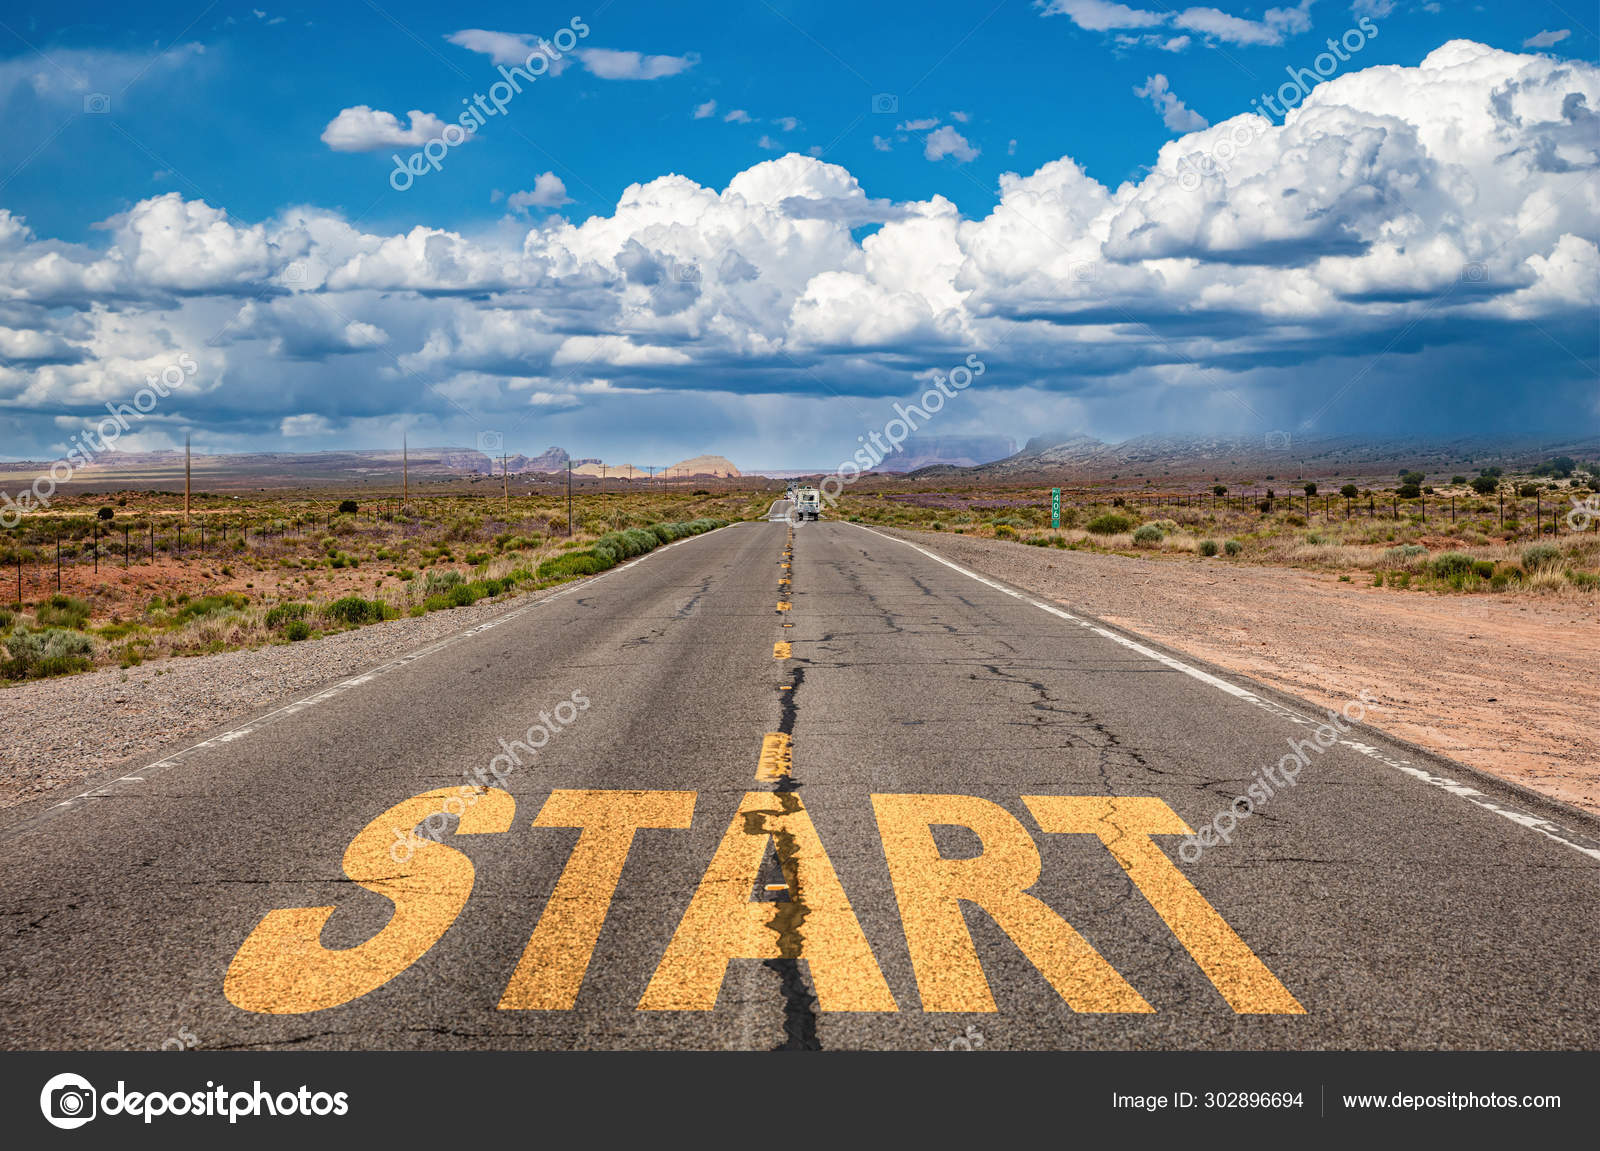 Start concept  Text sign on a long straight road, blue sky